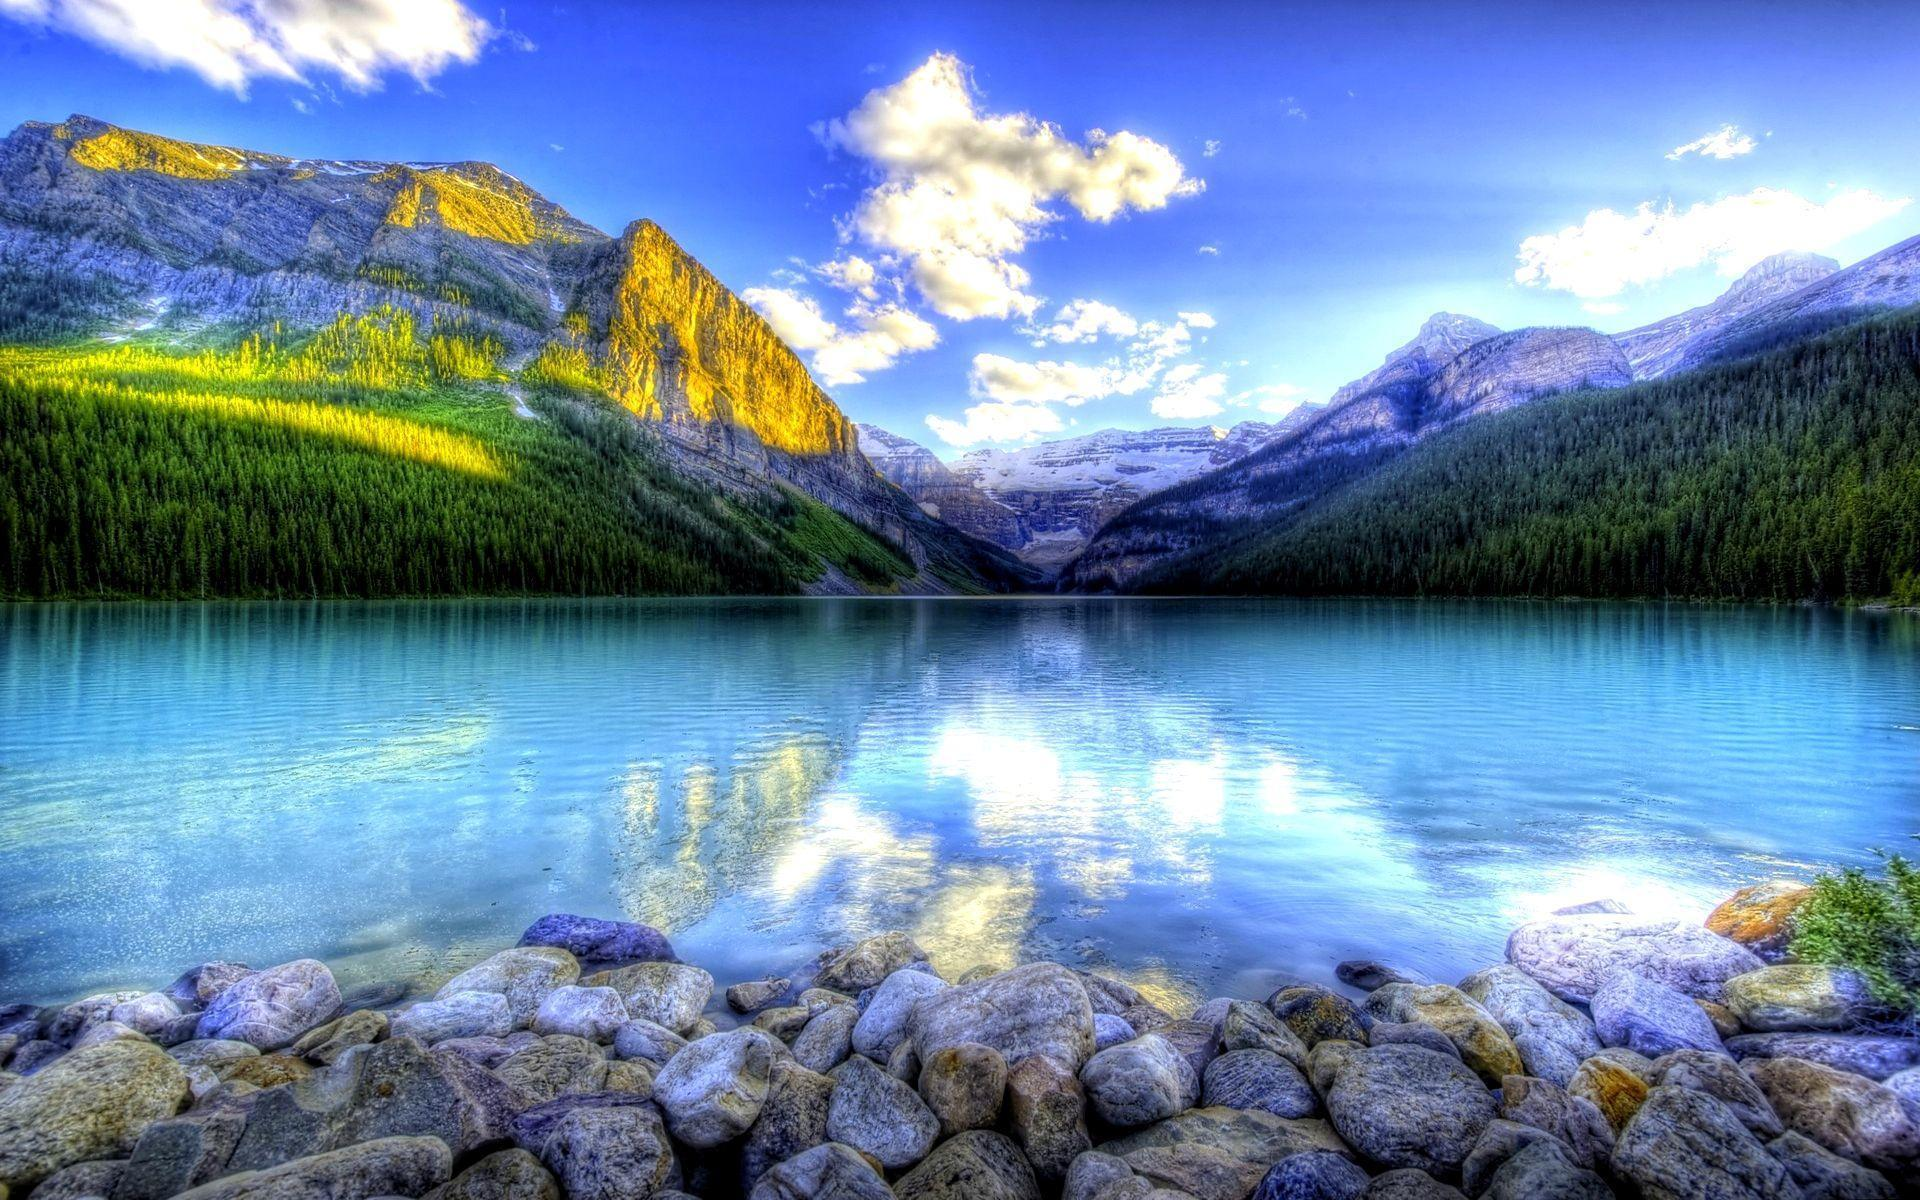 Lake Wallpapers HD Pictures | Live HD Wallpaper HQ Pictures ...